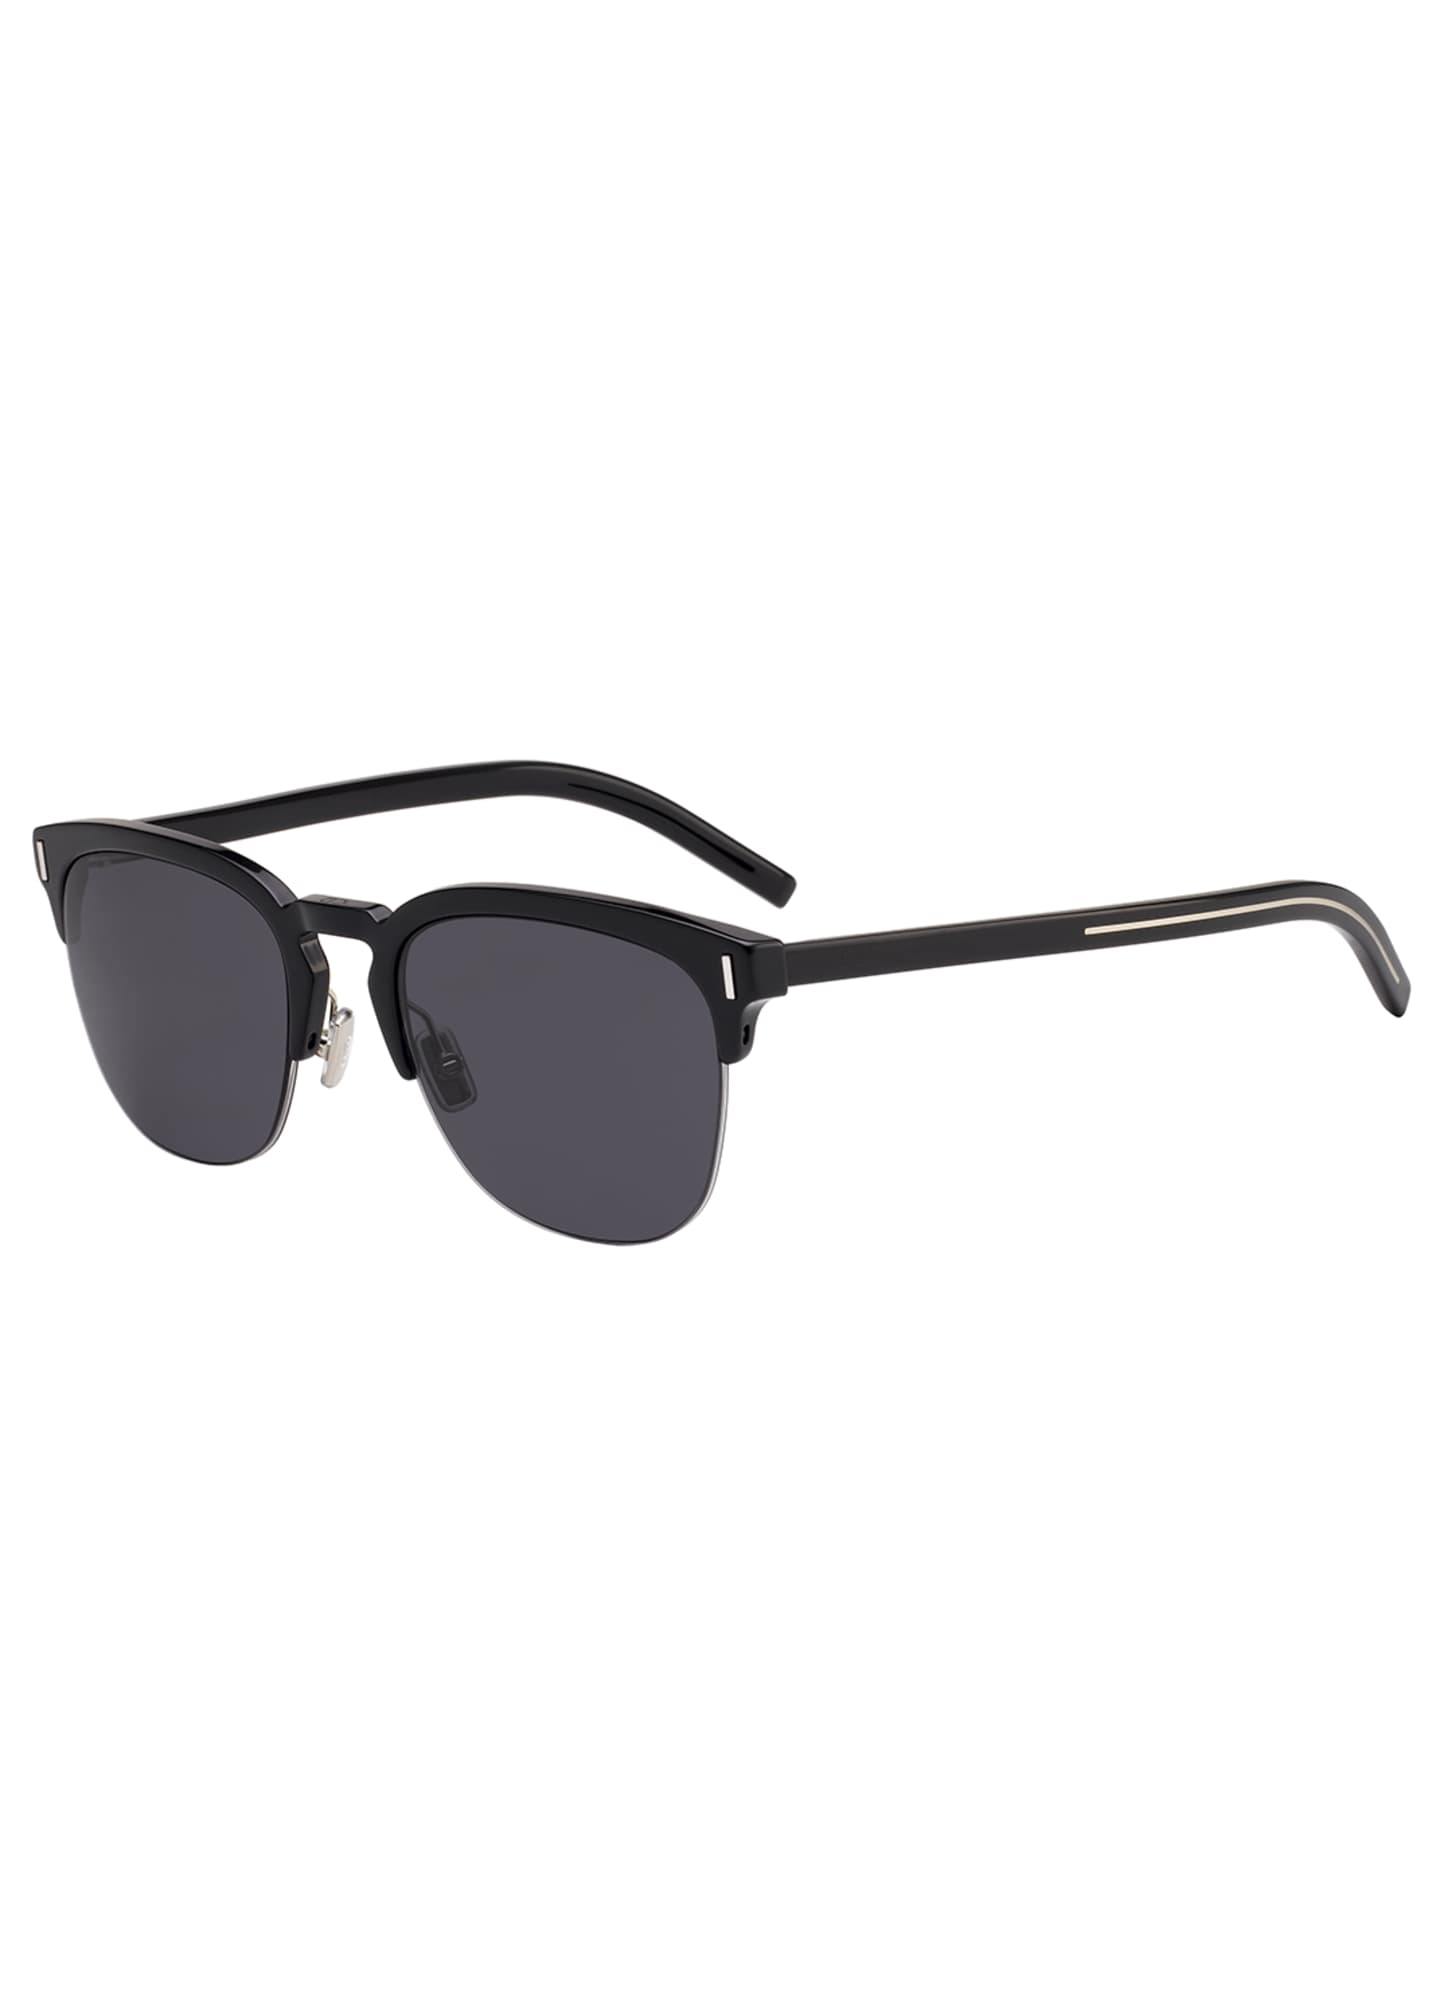 Image 1 of 1: Men's FRACTION6F Square Sunglasses